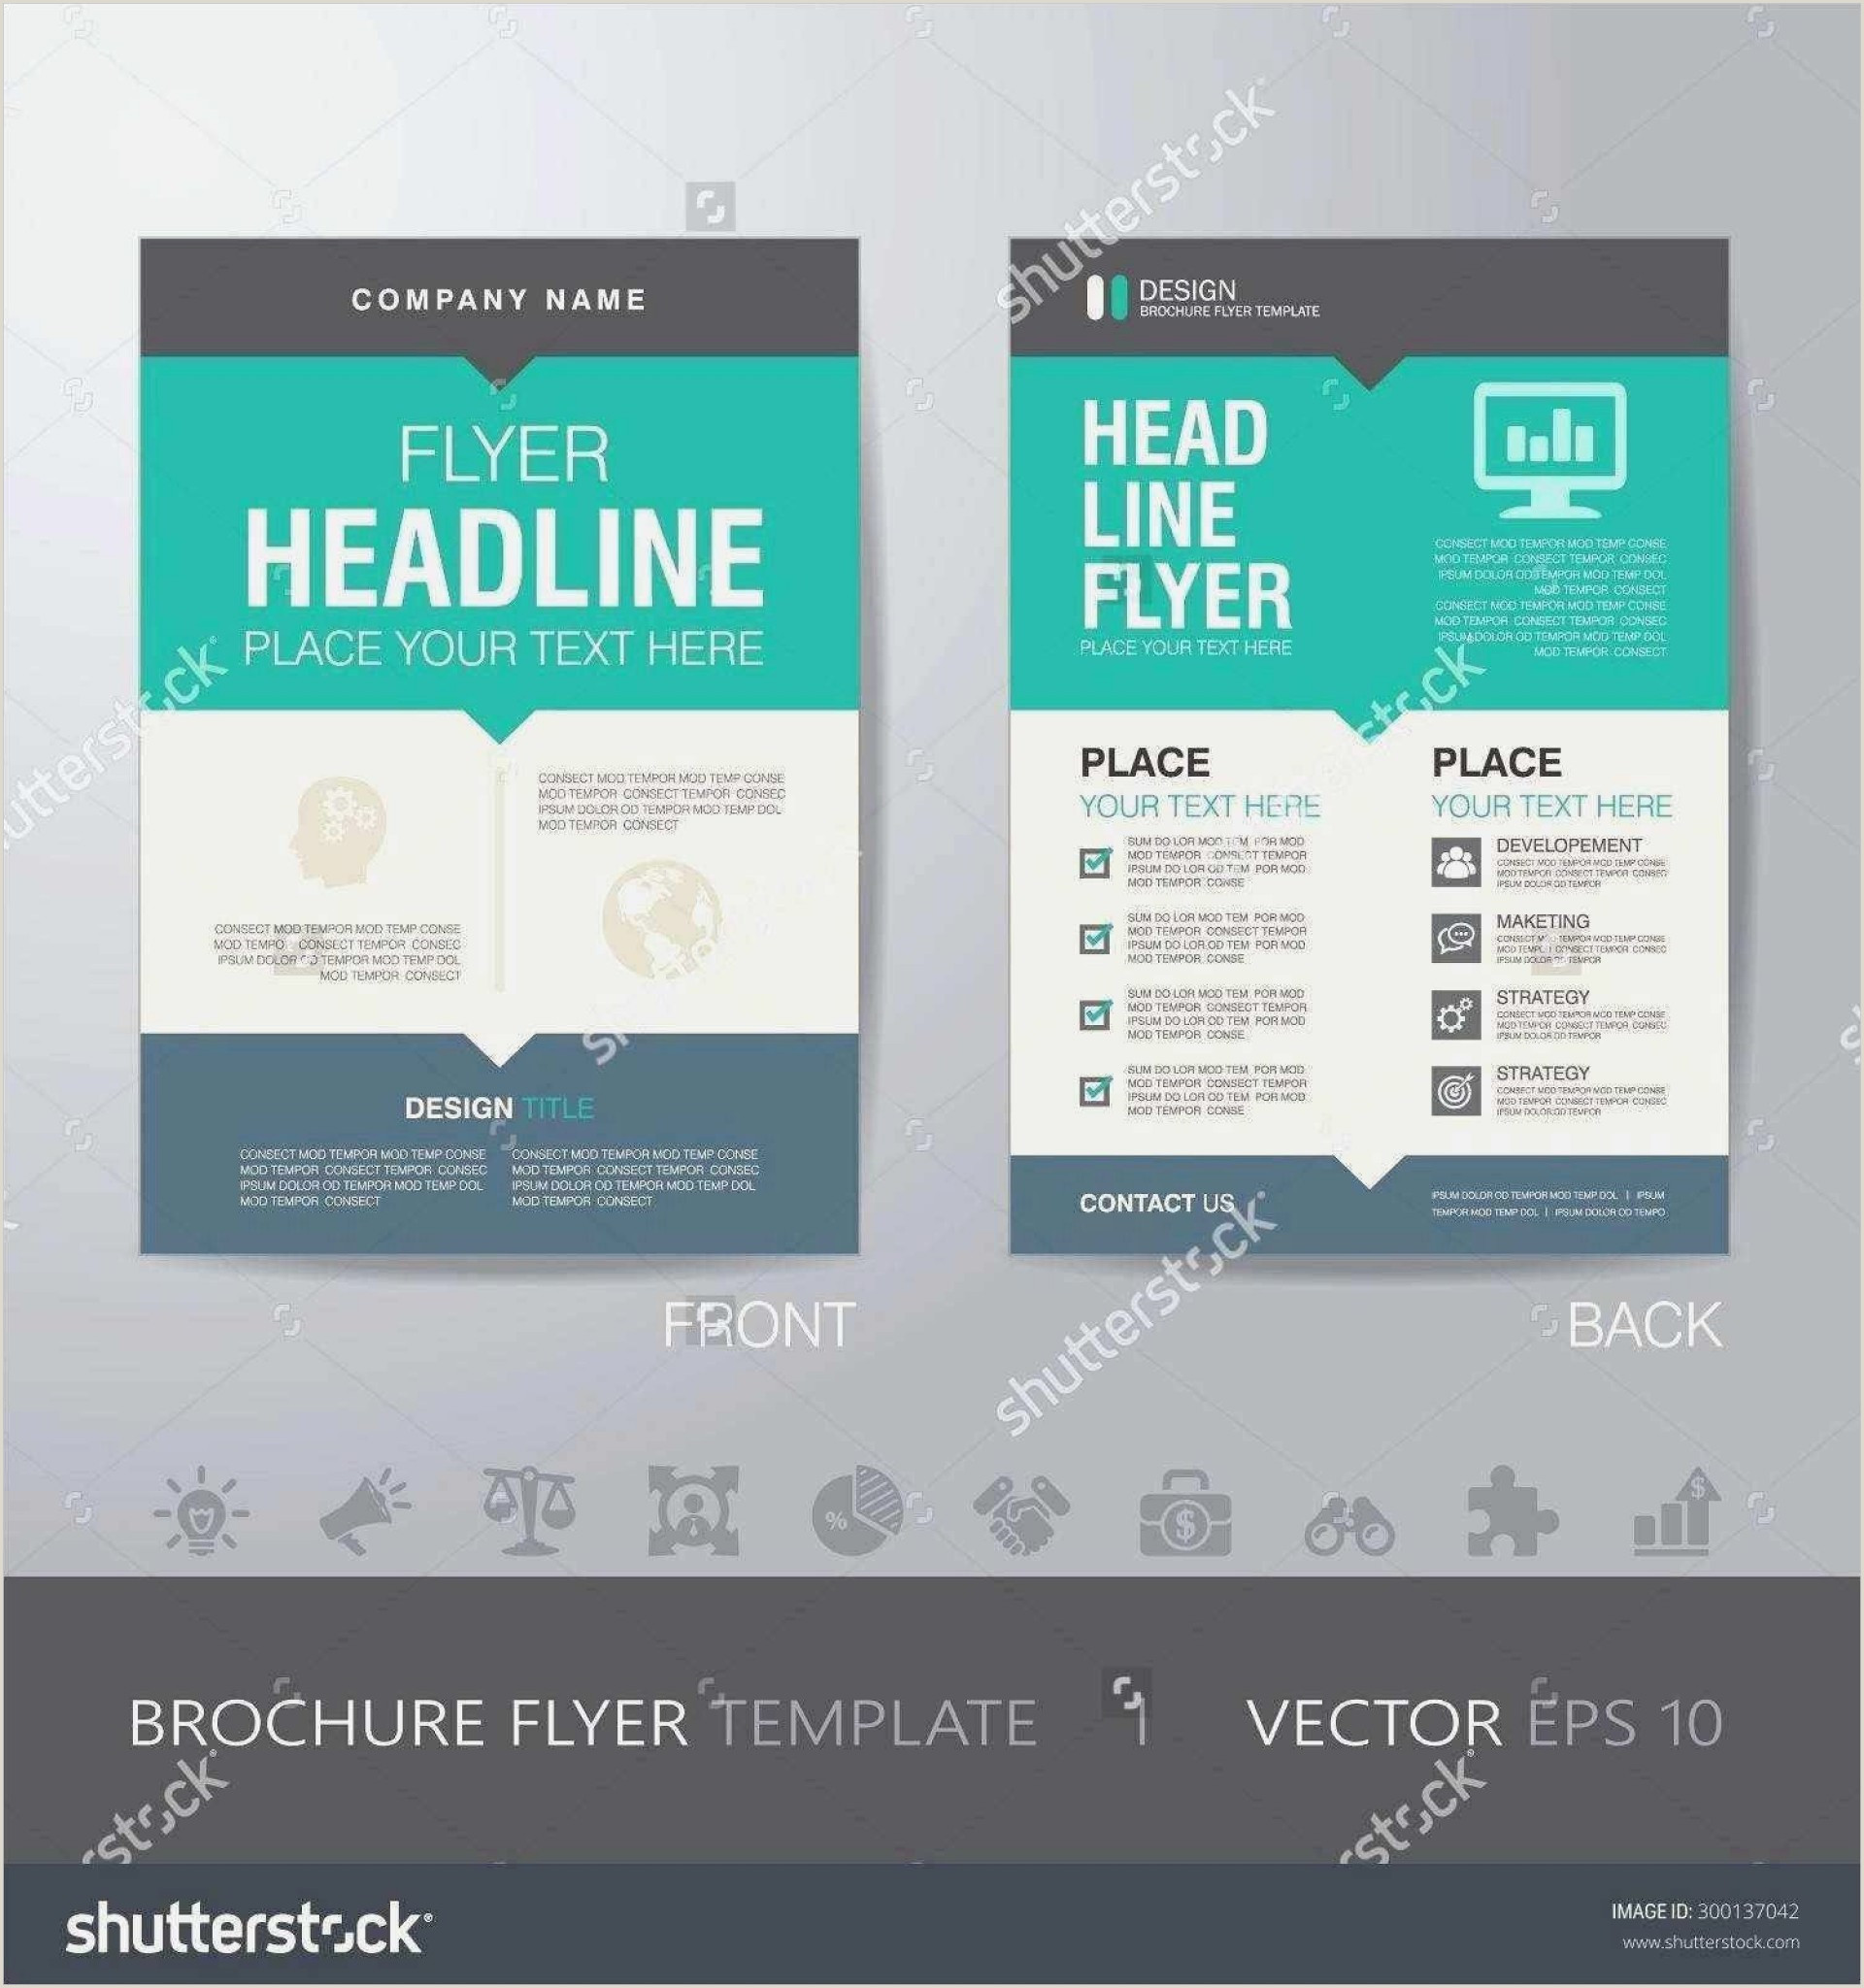 Back Of Real Estate Business Card Ideas Microsoft Publisher Flyer Templates Addictionary